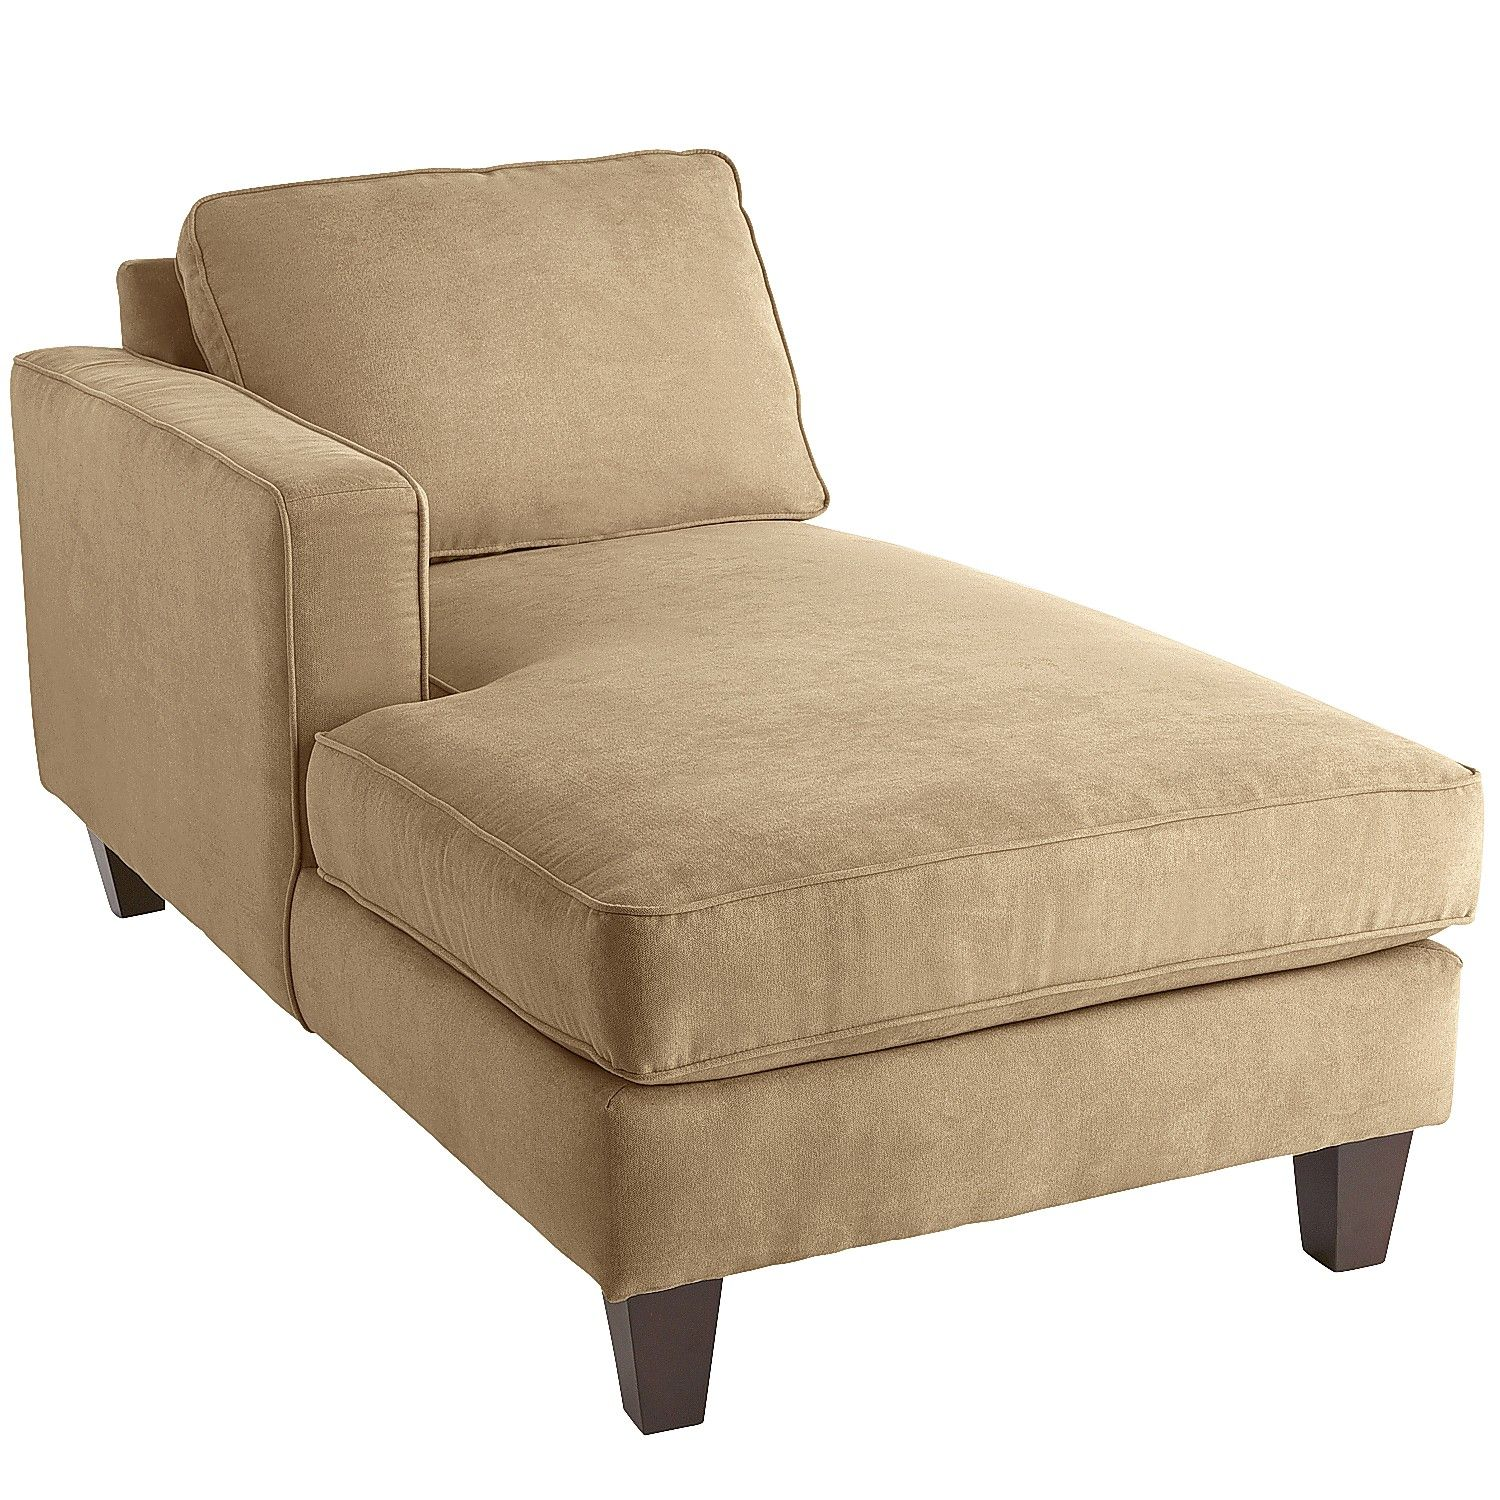 Alton Track Arm Left Facing Chaise Tan Chairs